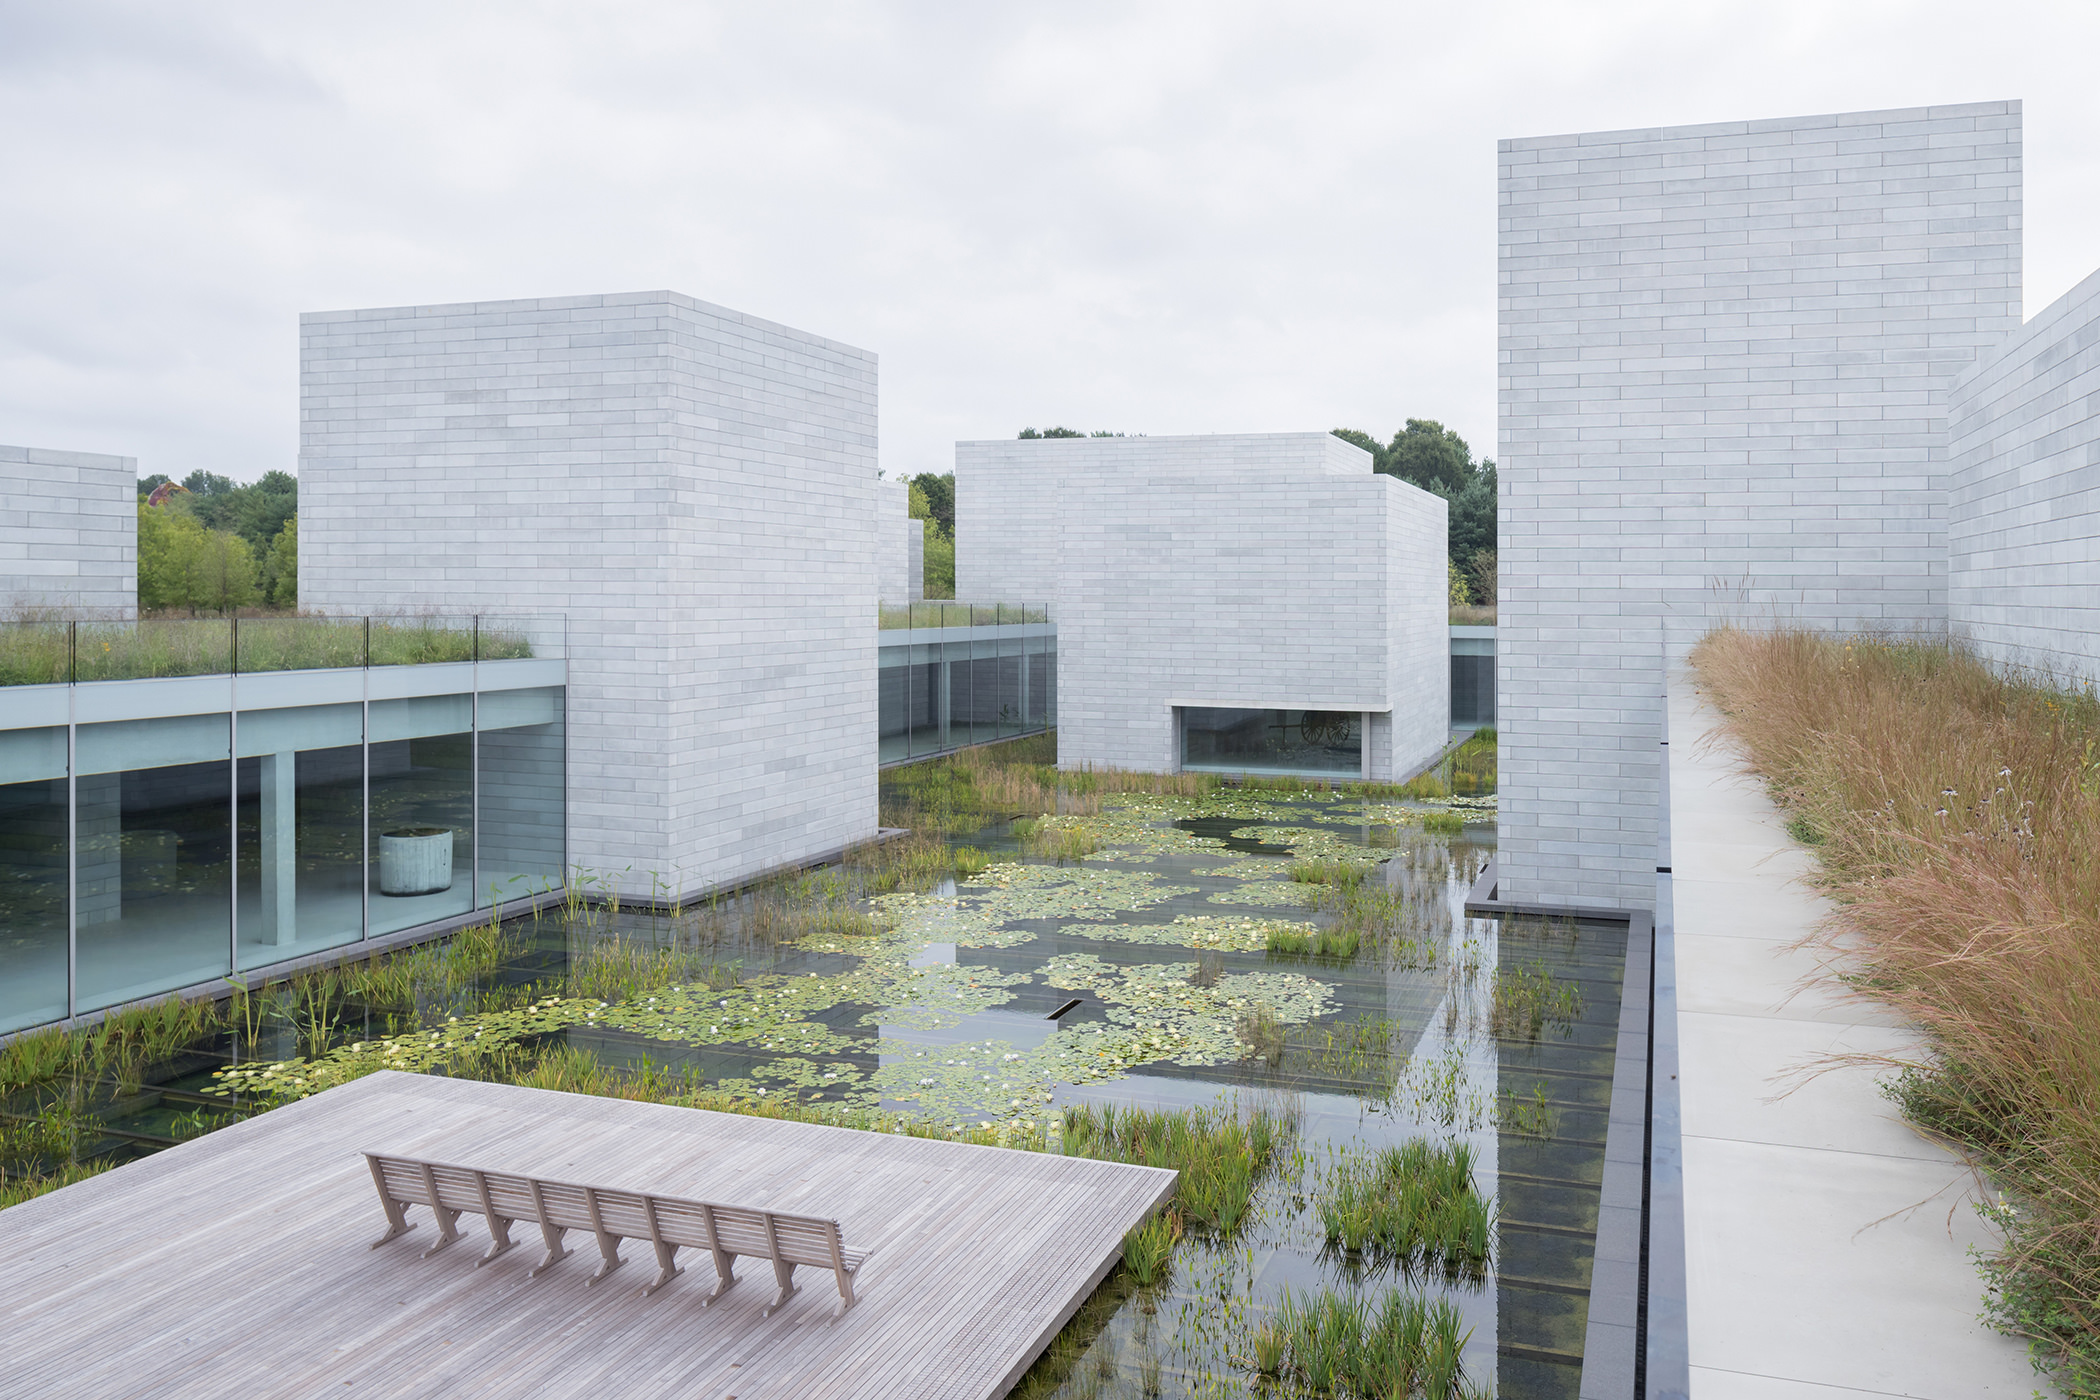 Gray concrete buildings surround a central water-count with a platform and a bench. The water court is full of plant life.